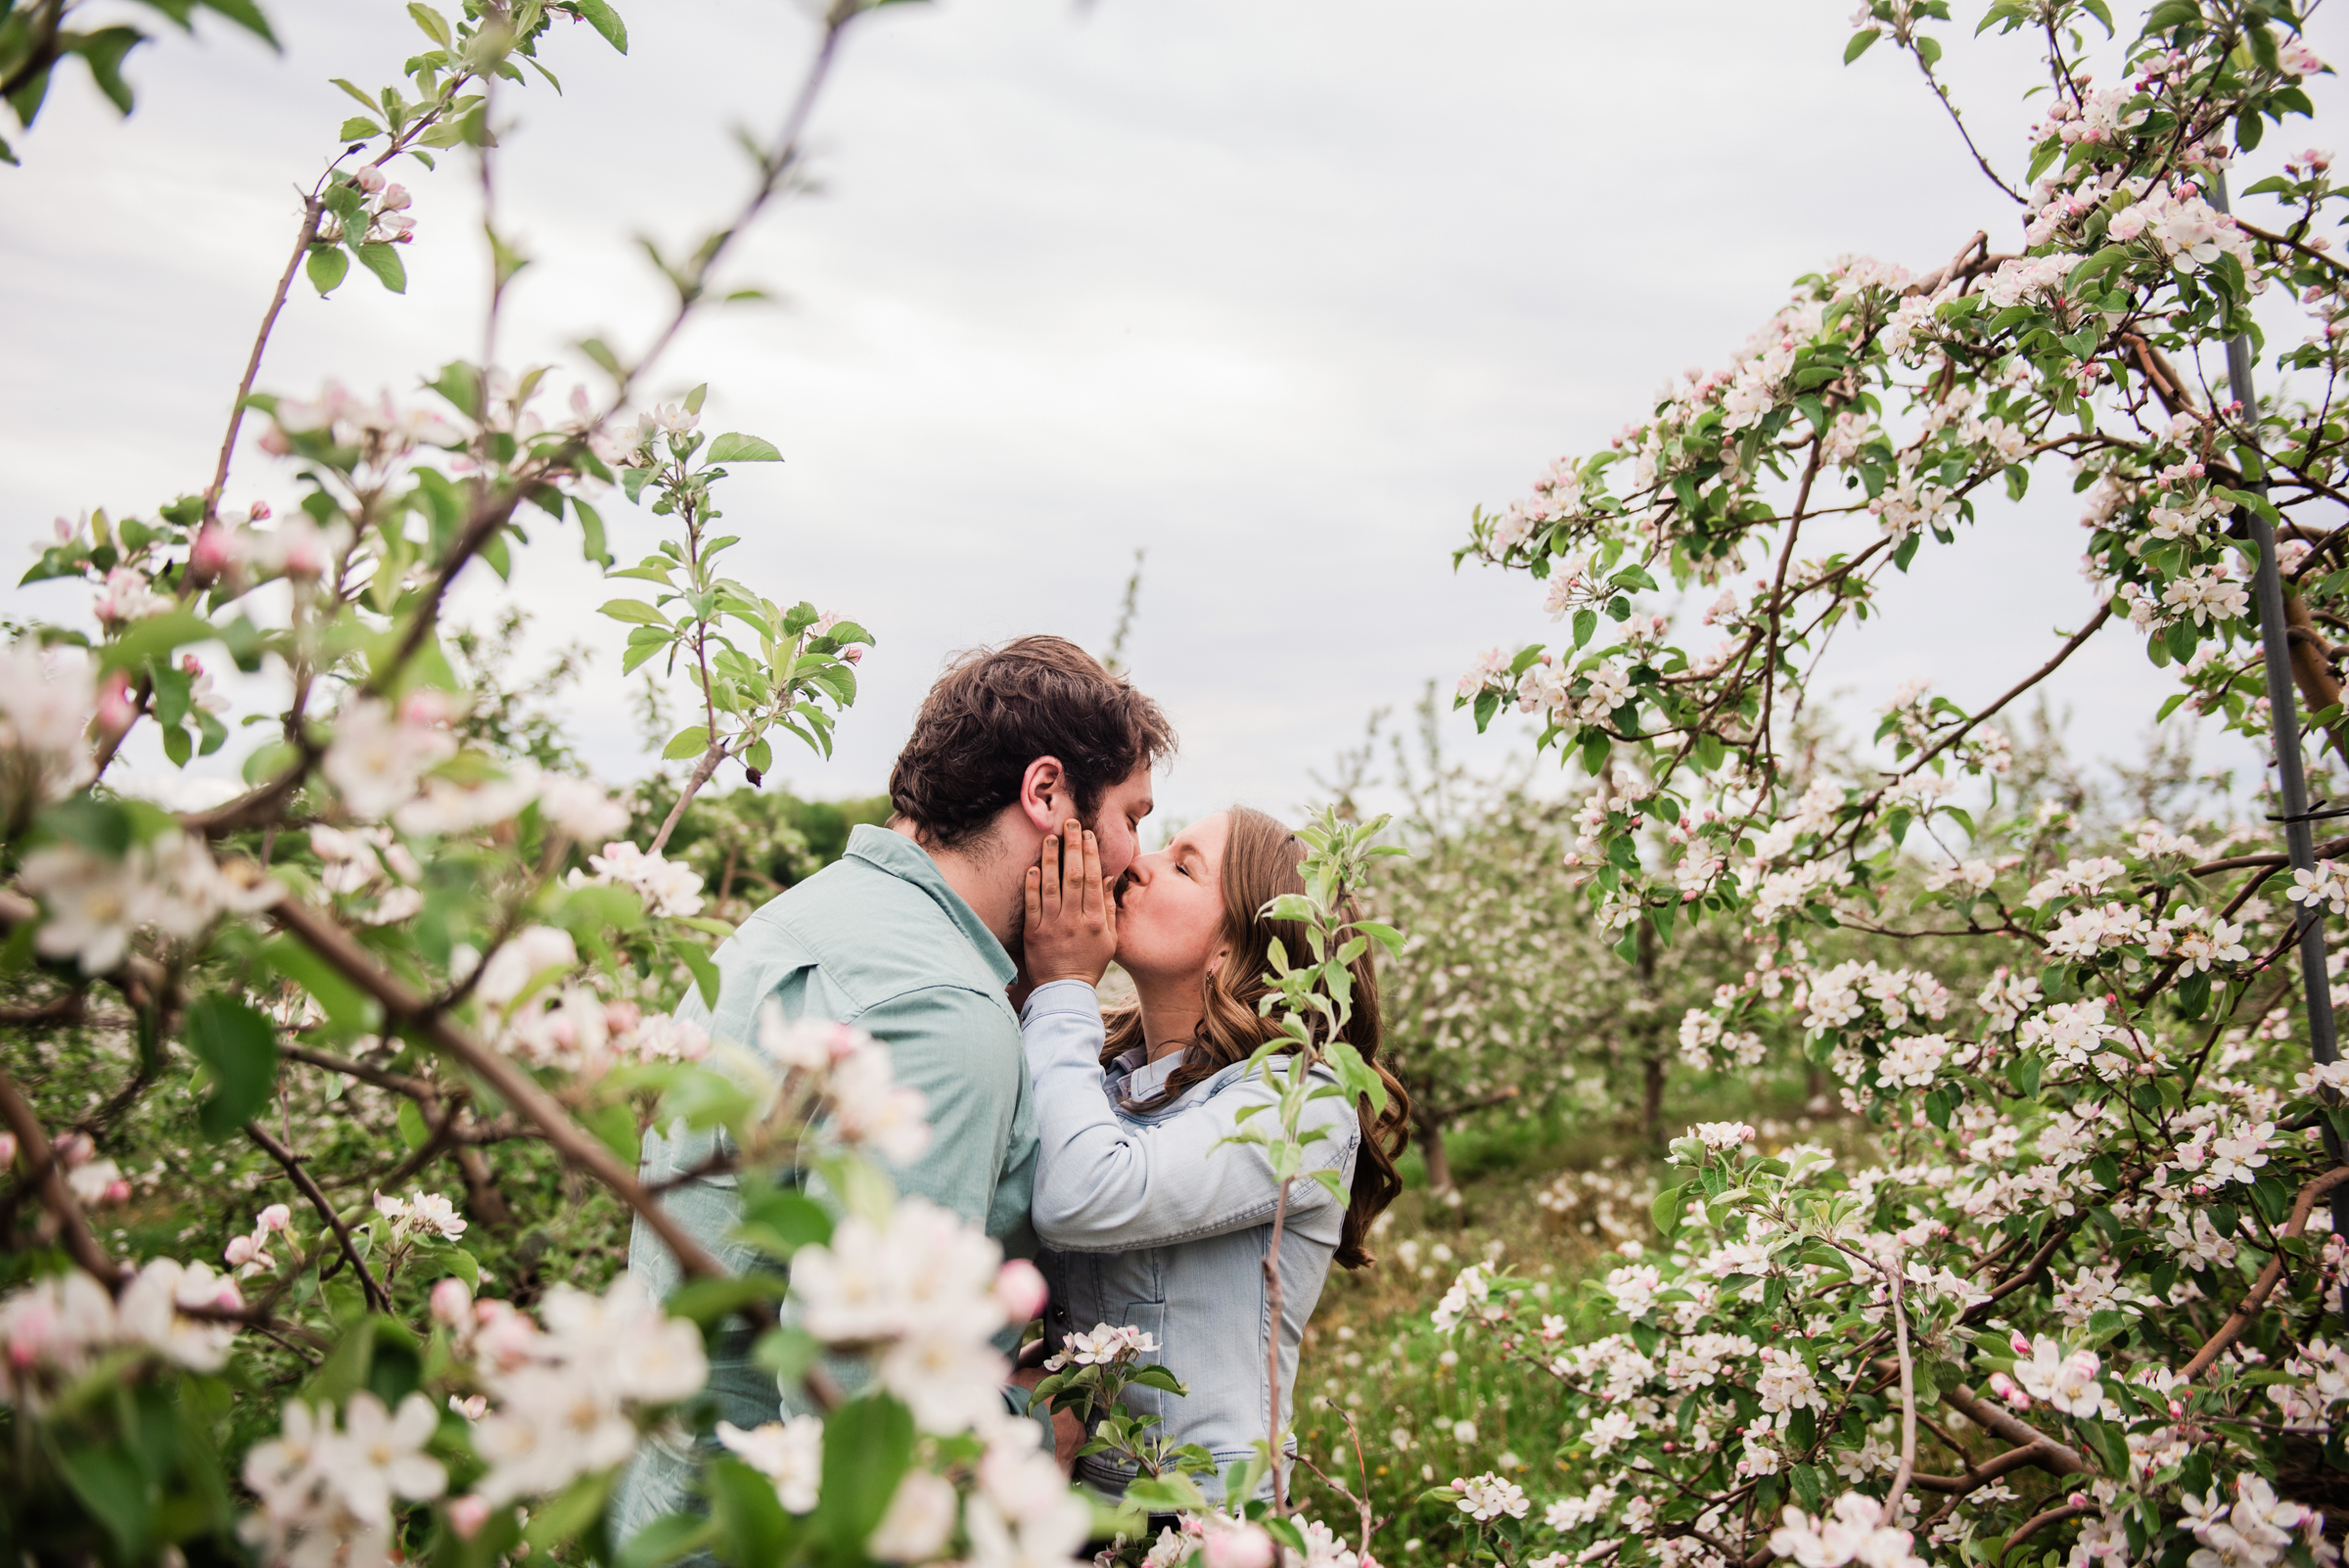 Fox_Farm_Rochester_Couples_Session_JILL_STUDIO_Rochester_NY_Photographer_DSC_7488.jpg